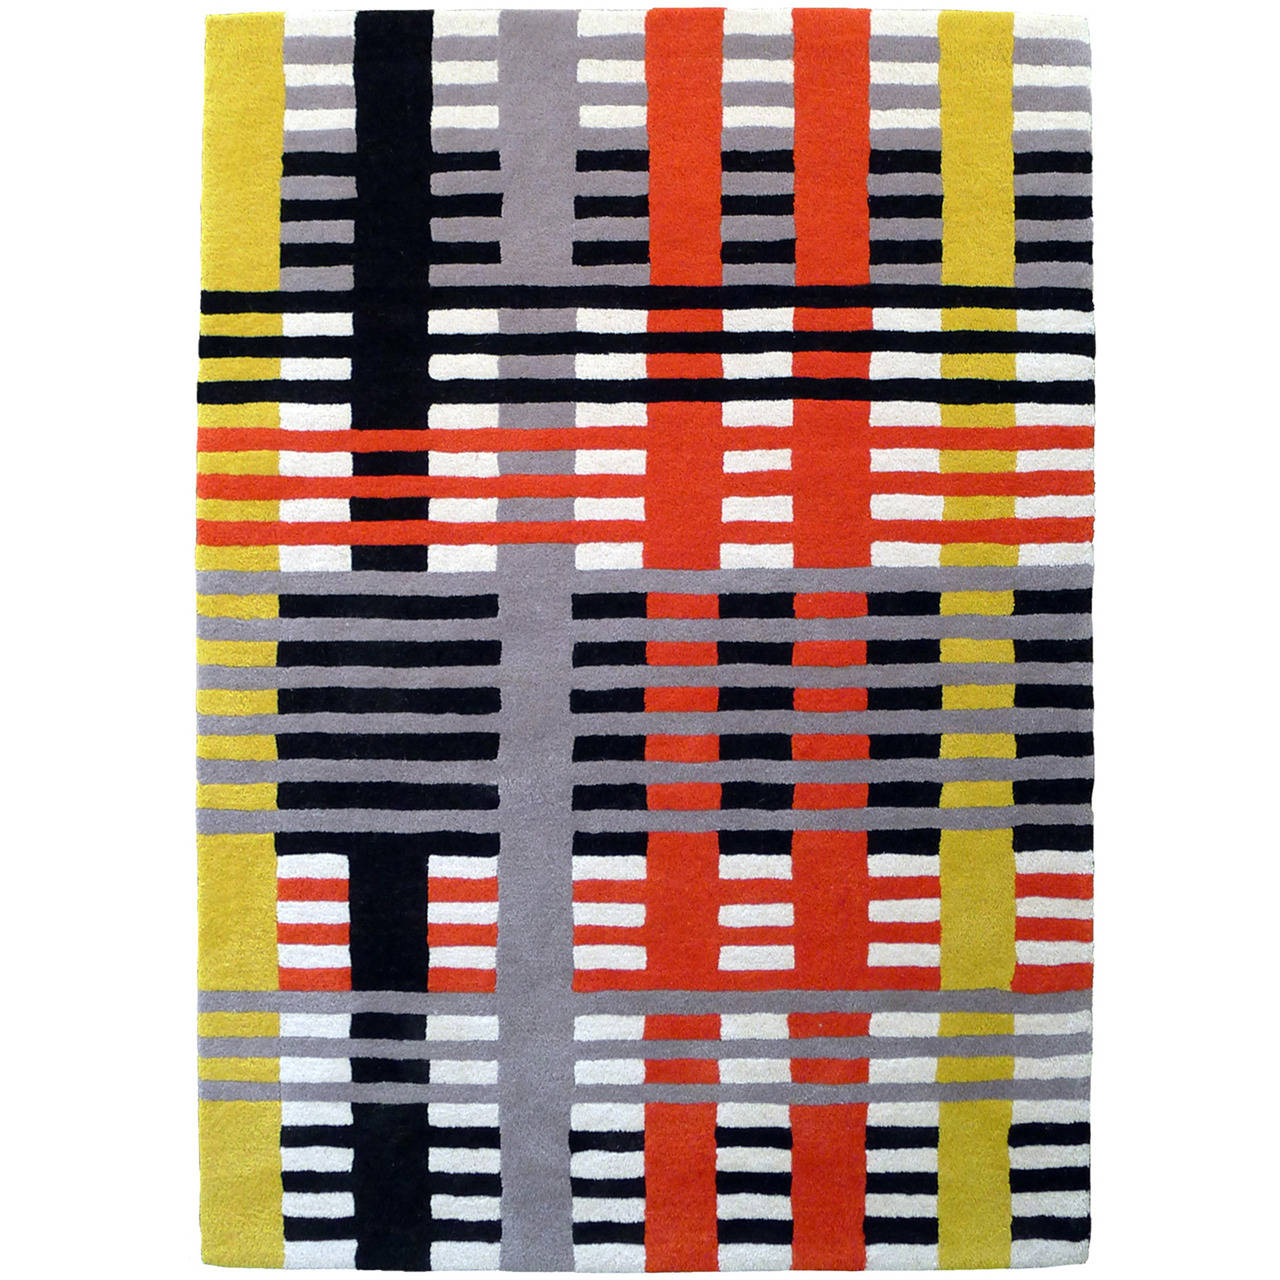 Study Rug By Anni Albers For Sale At 1stdibs